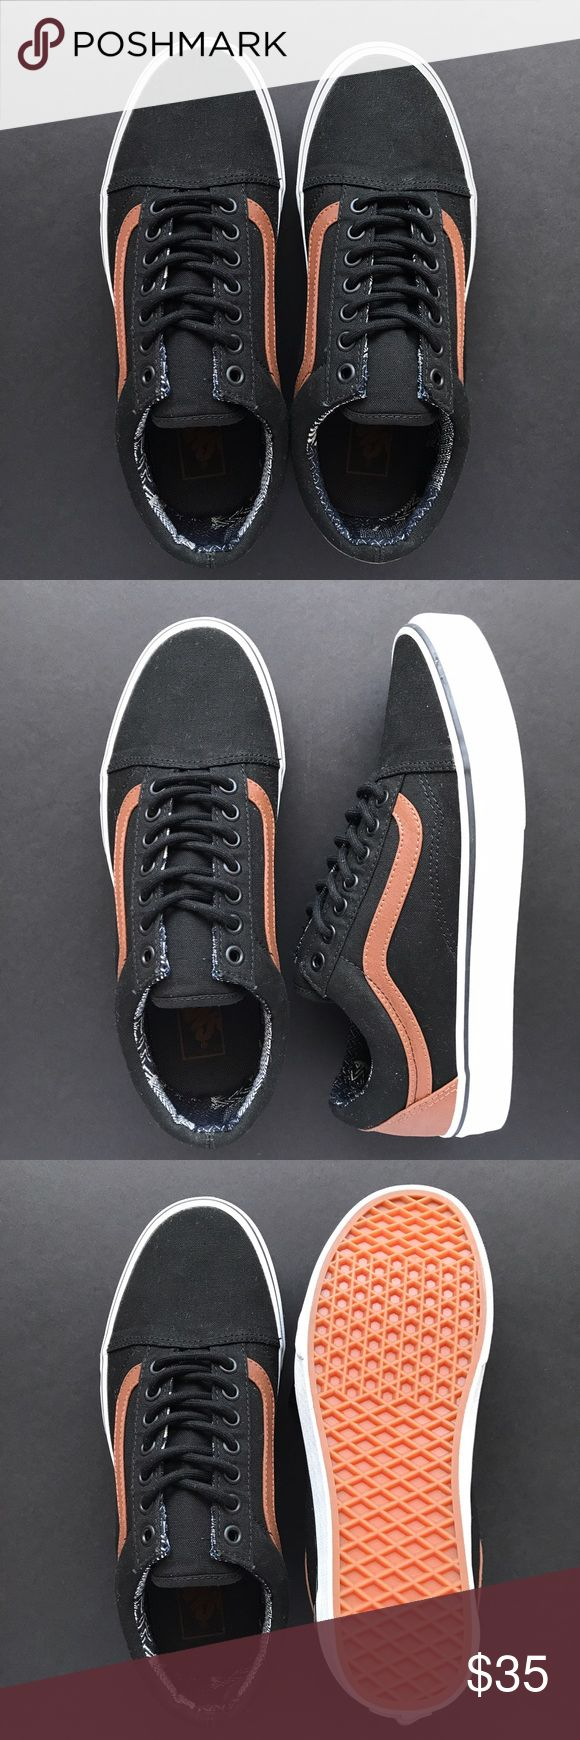 ***NEW*** Vans Old Skool Black Canvas with Leather ***NEW*** Black canvas with brown leather stripe Vans Old Skool. Patchwork denim linings. Box not included. US Size: Women's 10.5, Men's 9 Vans Shoes Sneakers